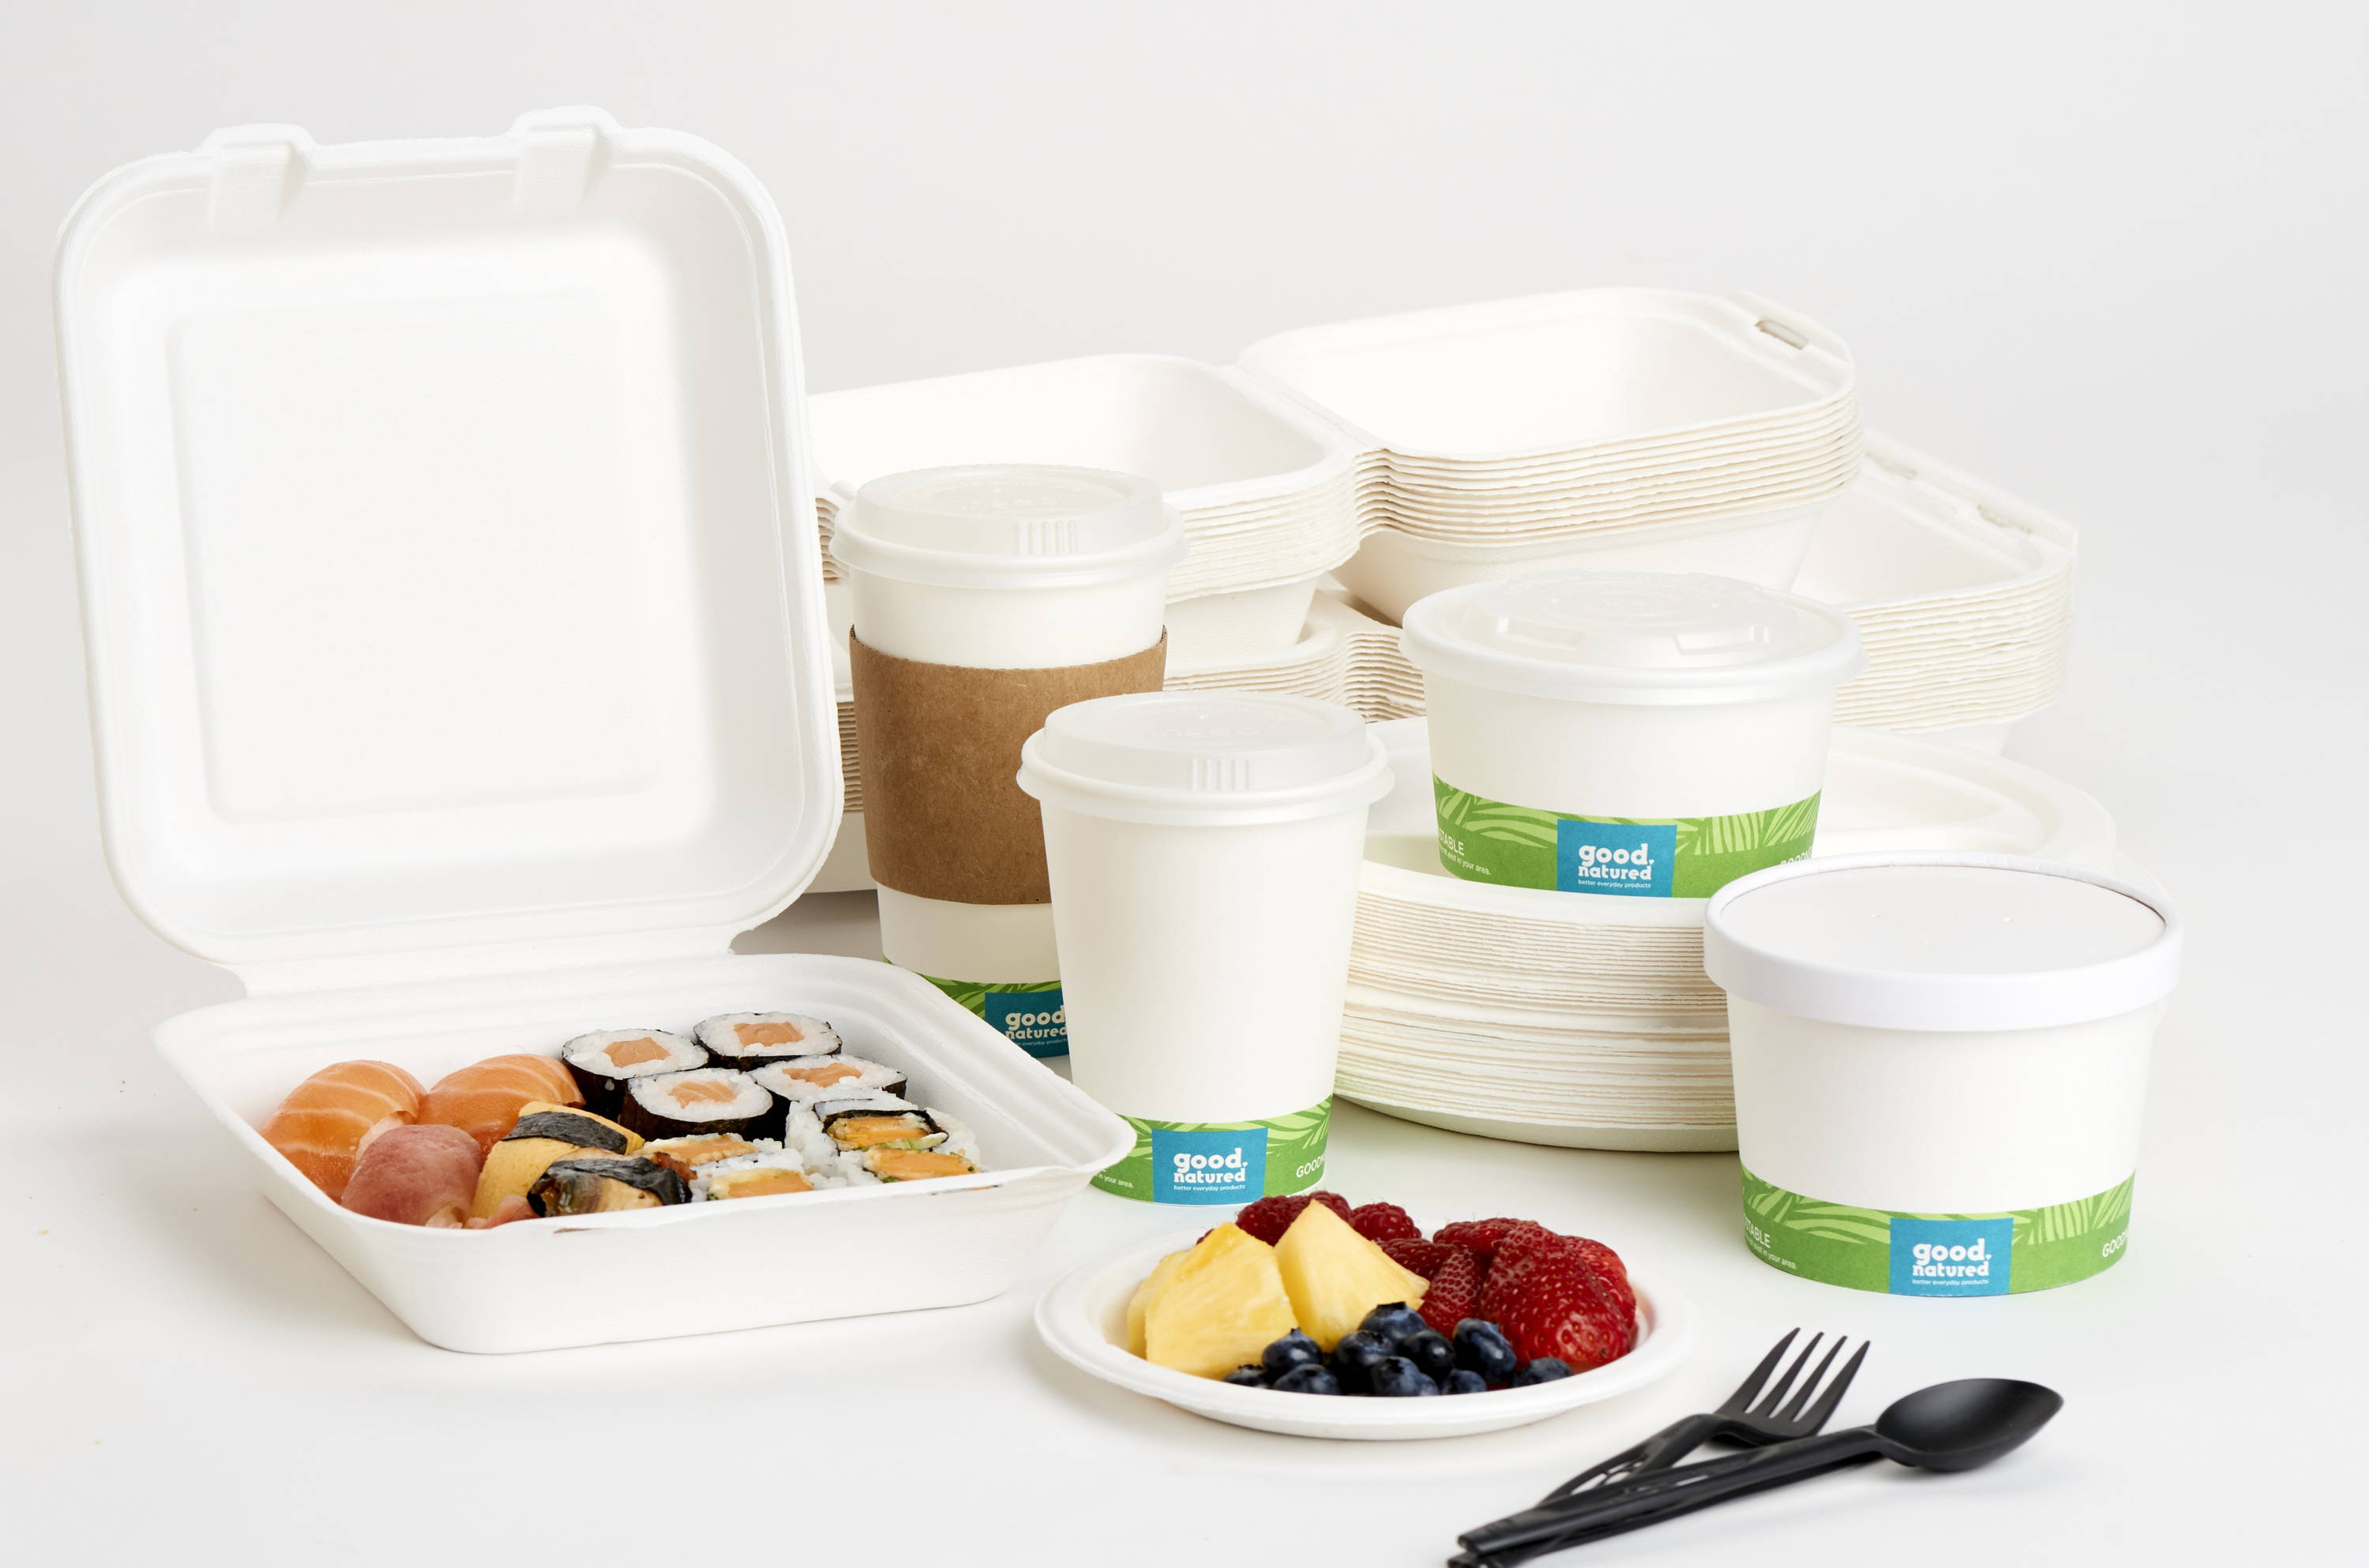 compostable take-out containers with cups, lids, and silverware